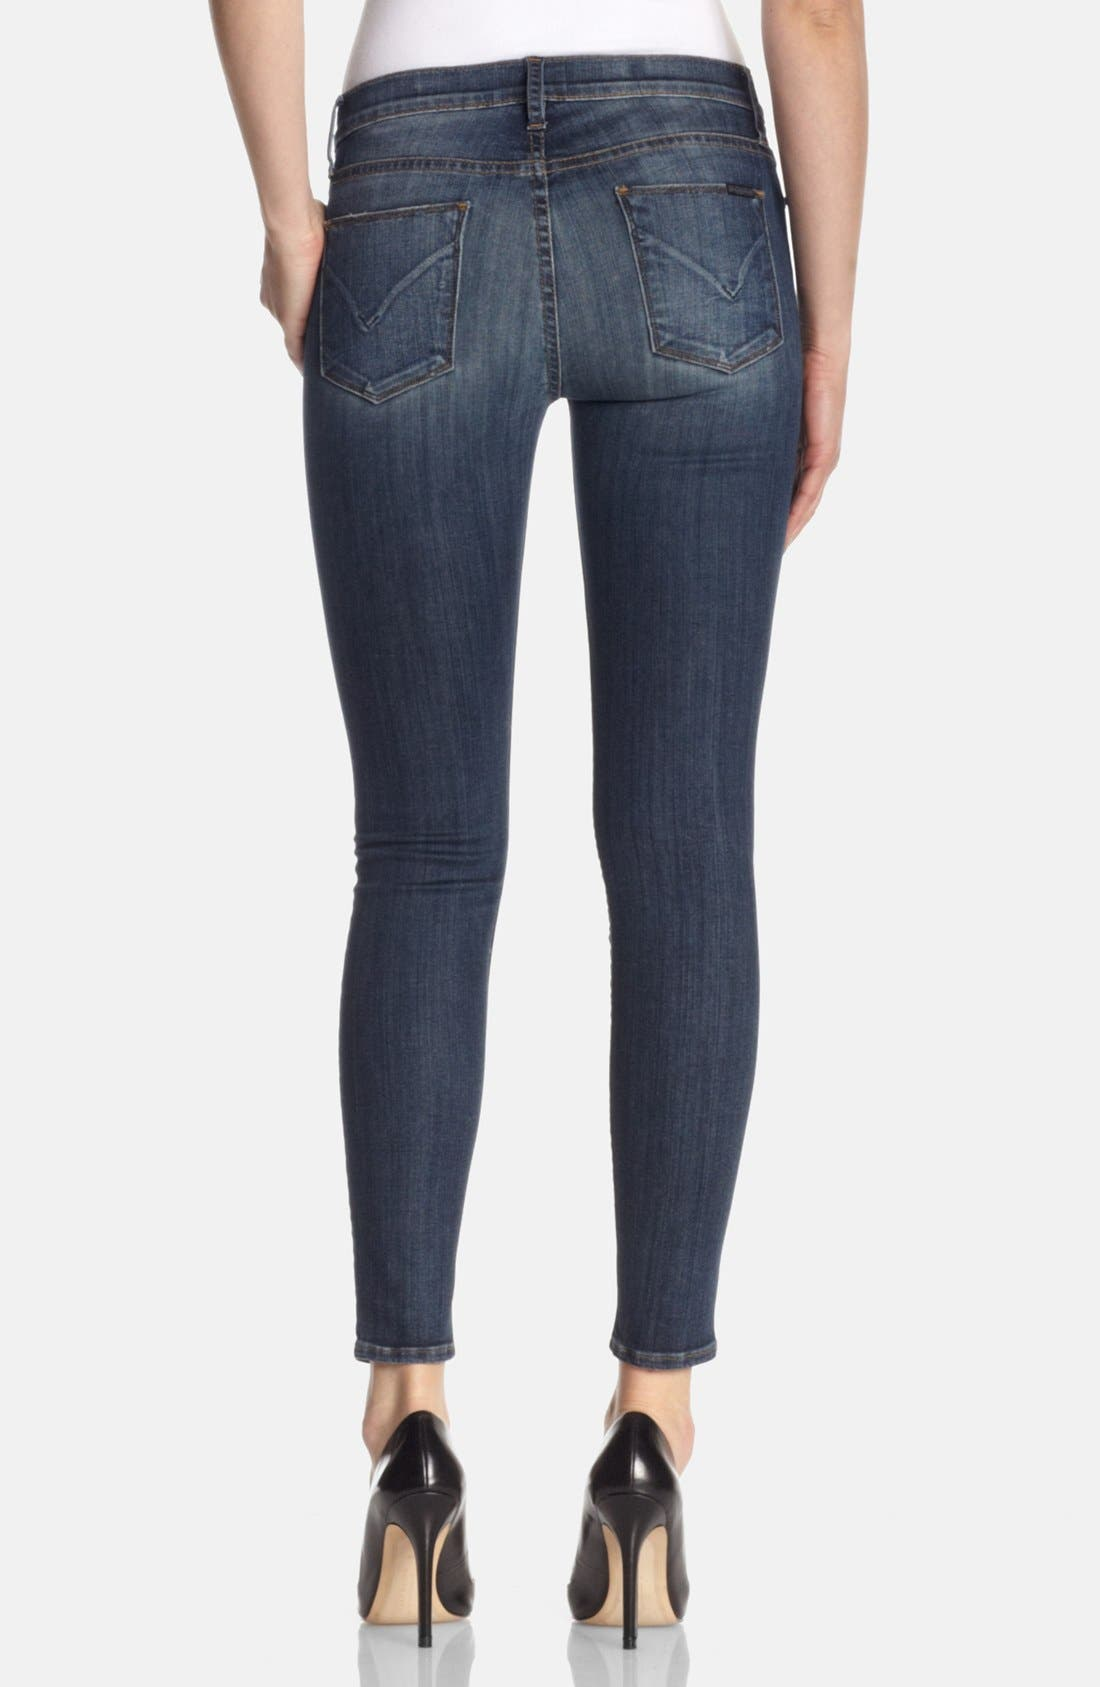 Alternate Image 2  - Hudson Jeans 'Nico' Mid Rise Skinny Jeans (Glam)